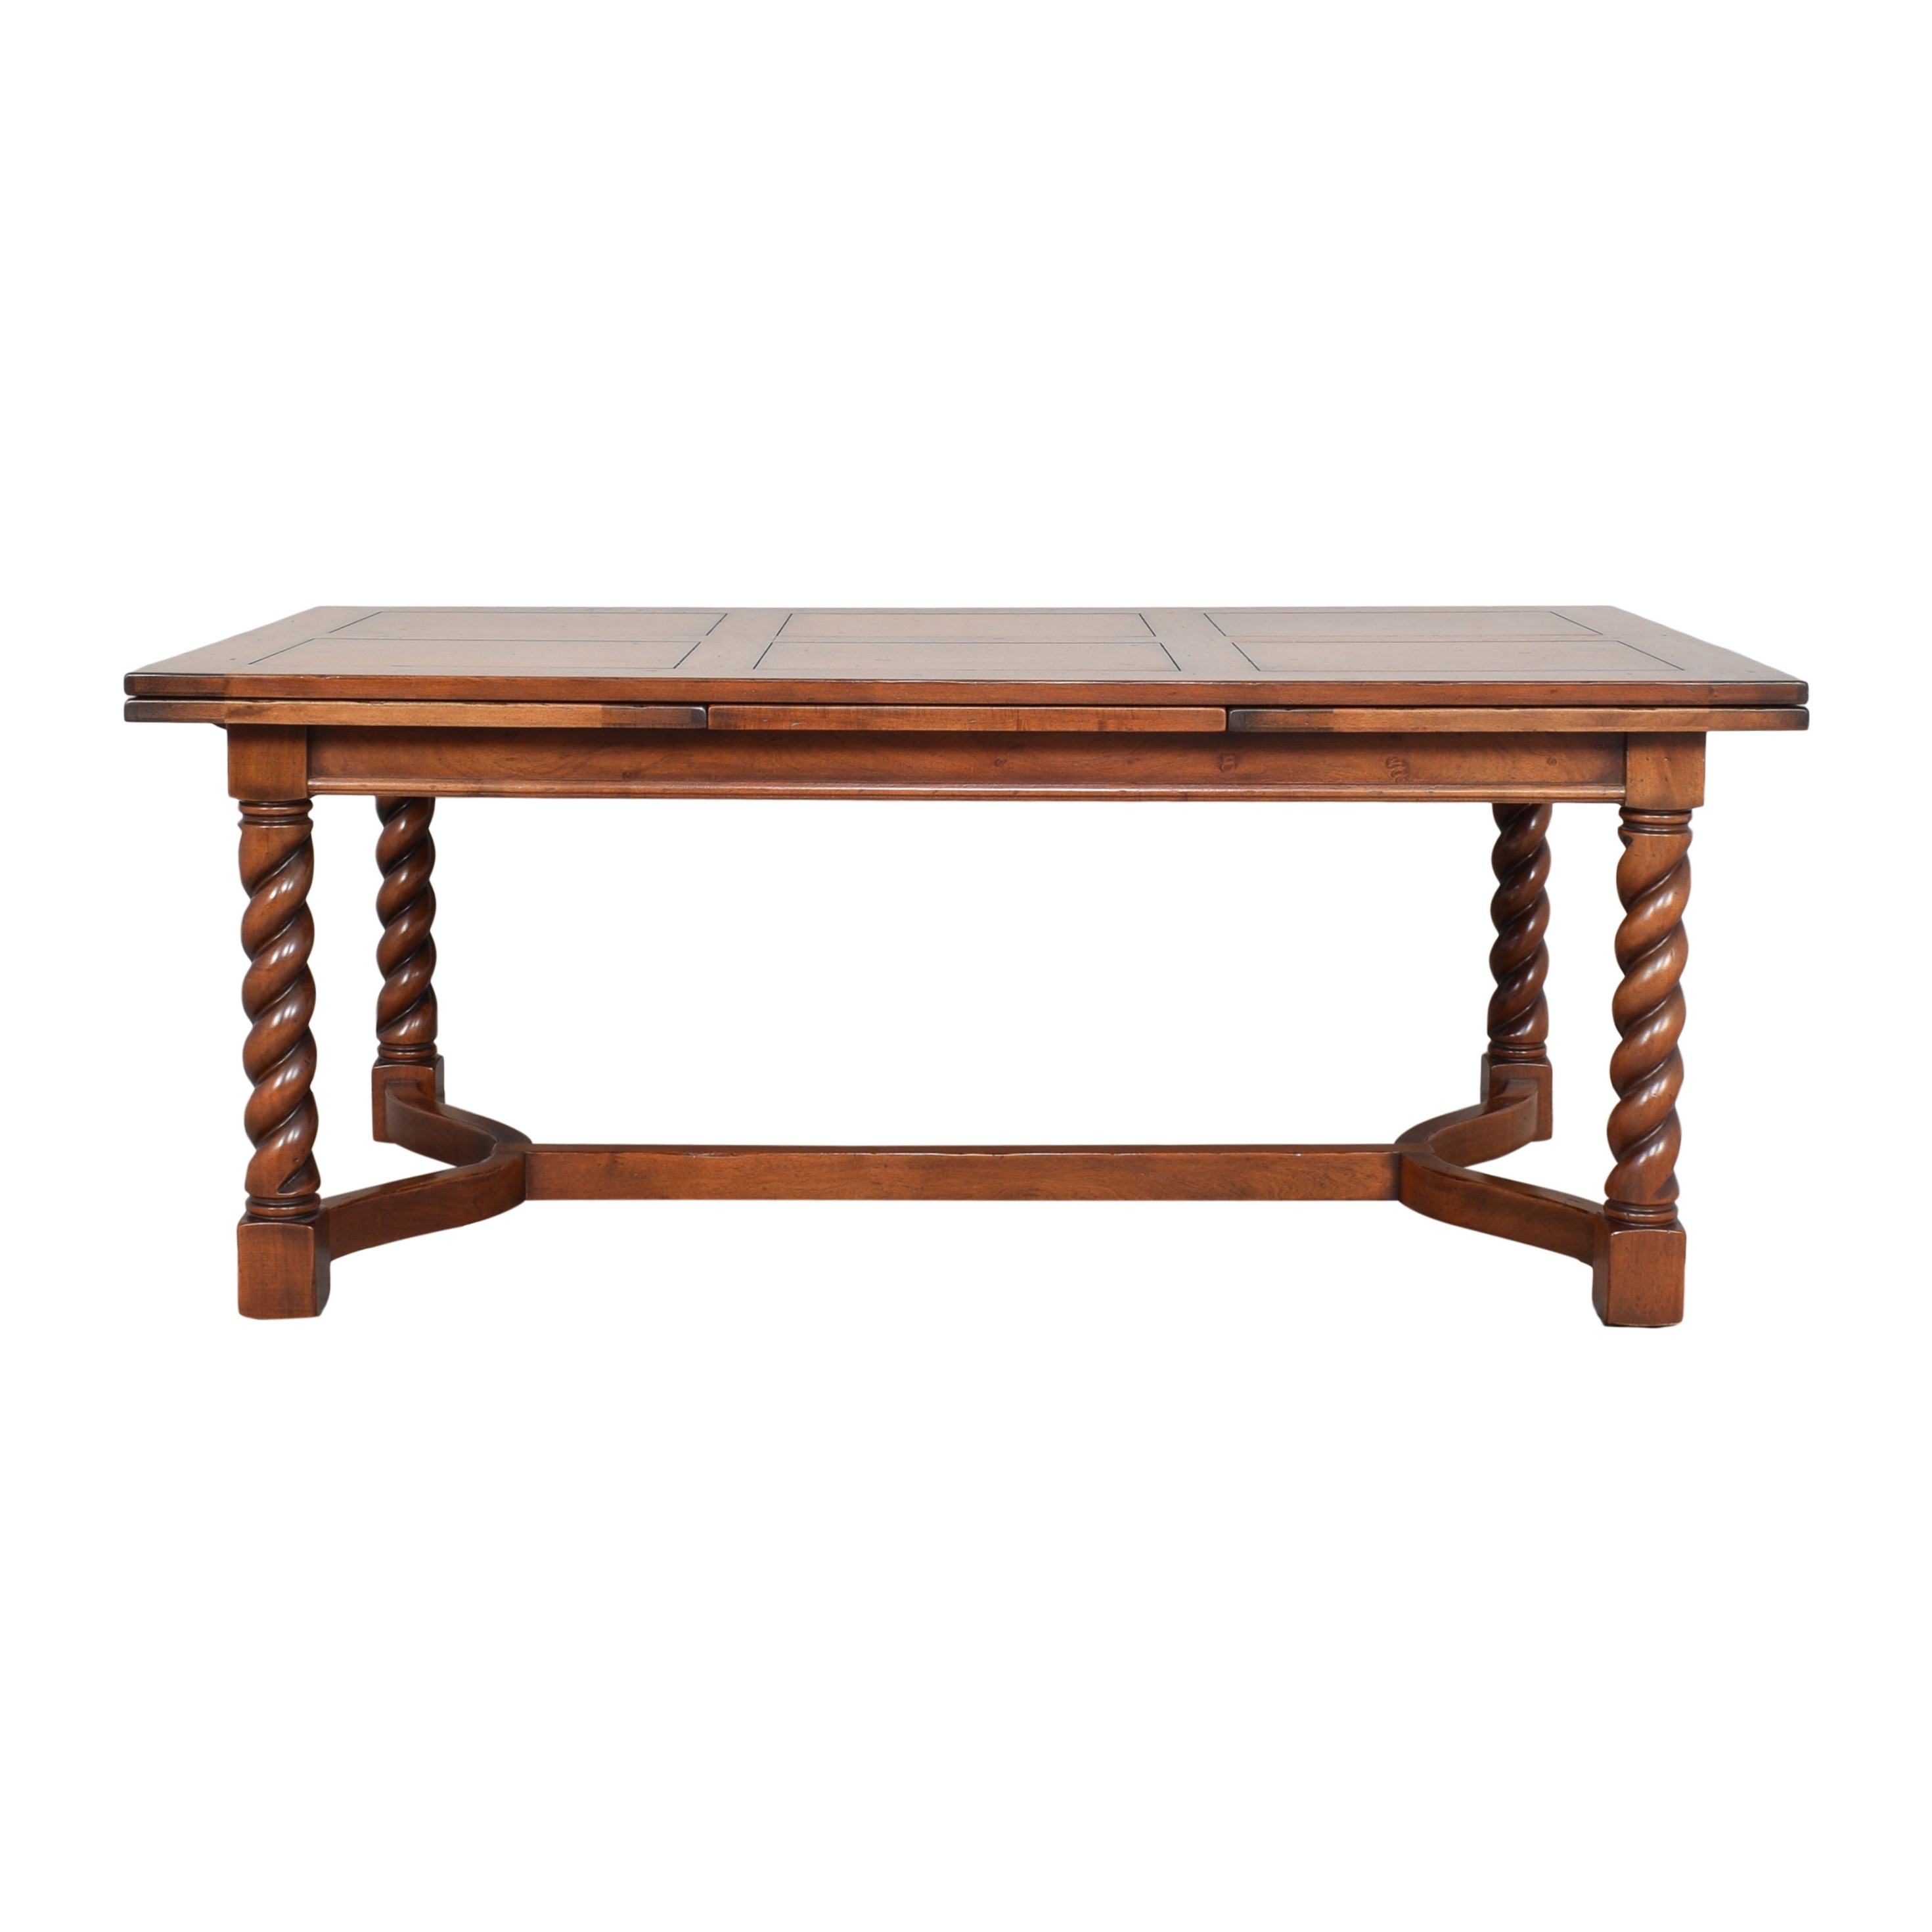 South Cone Furniture South Cone Furniture Refectory Dining Table dimensions